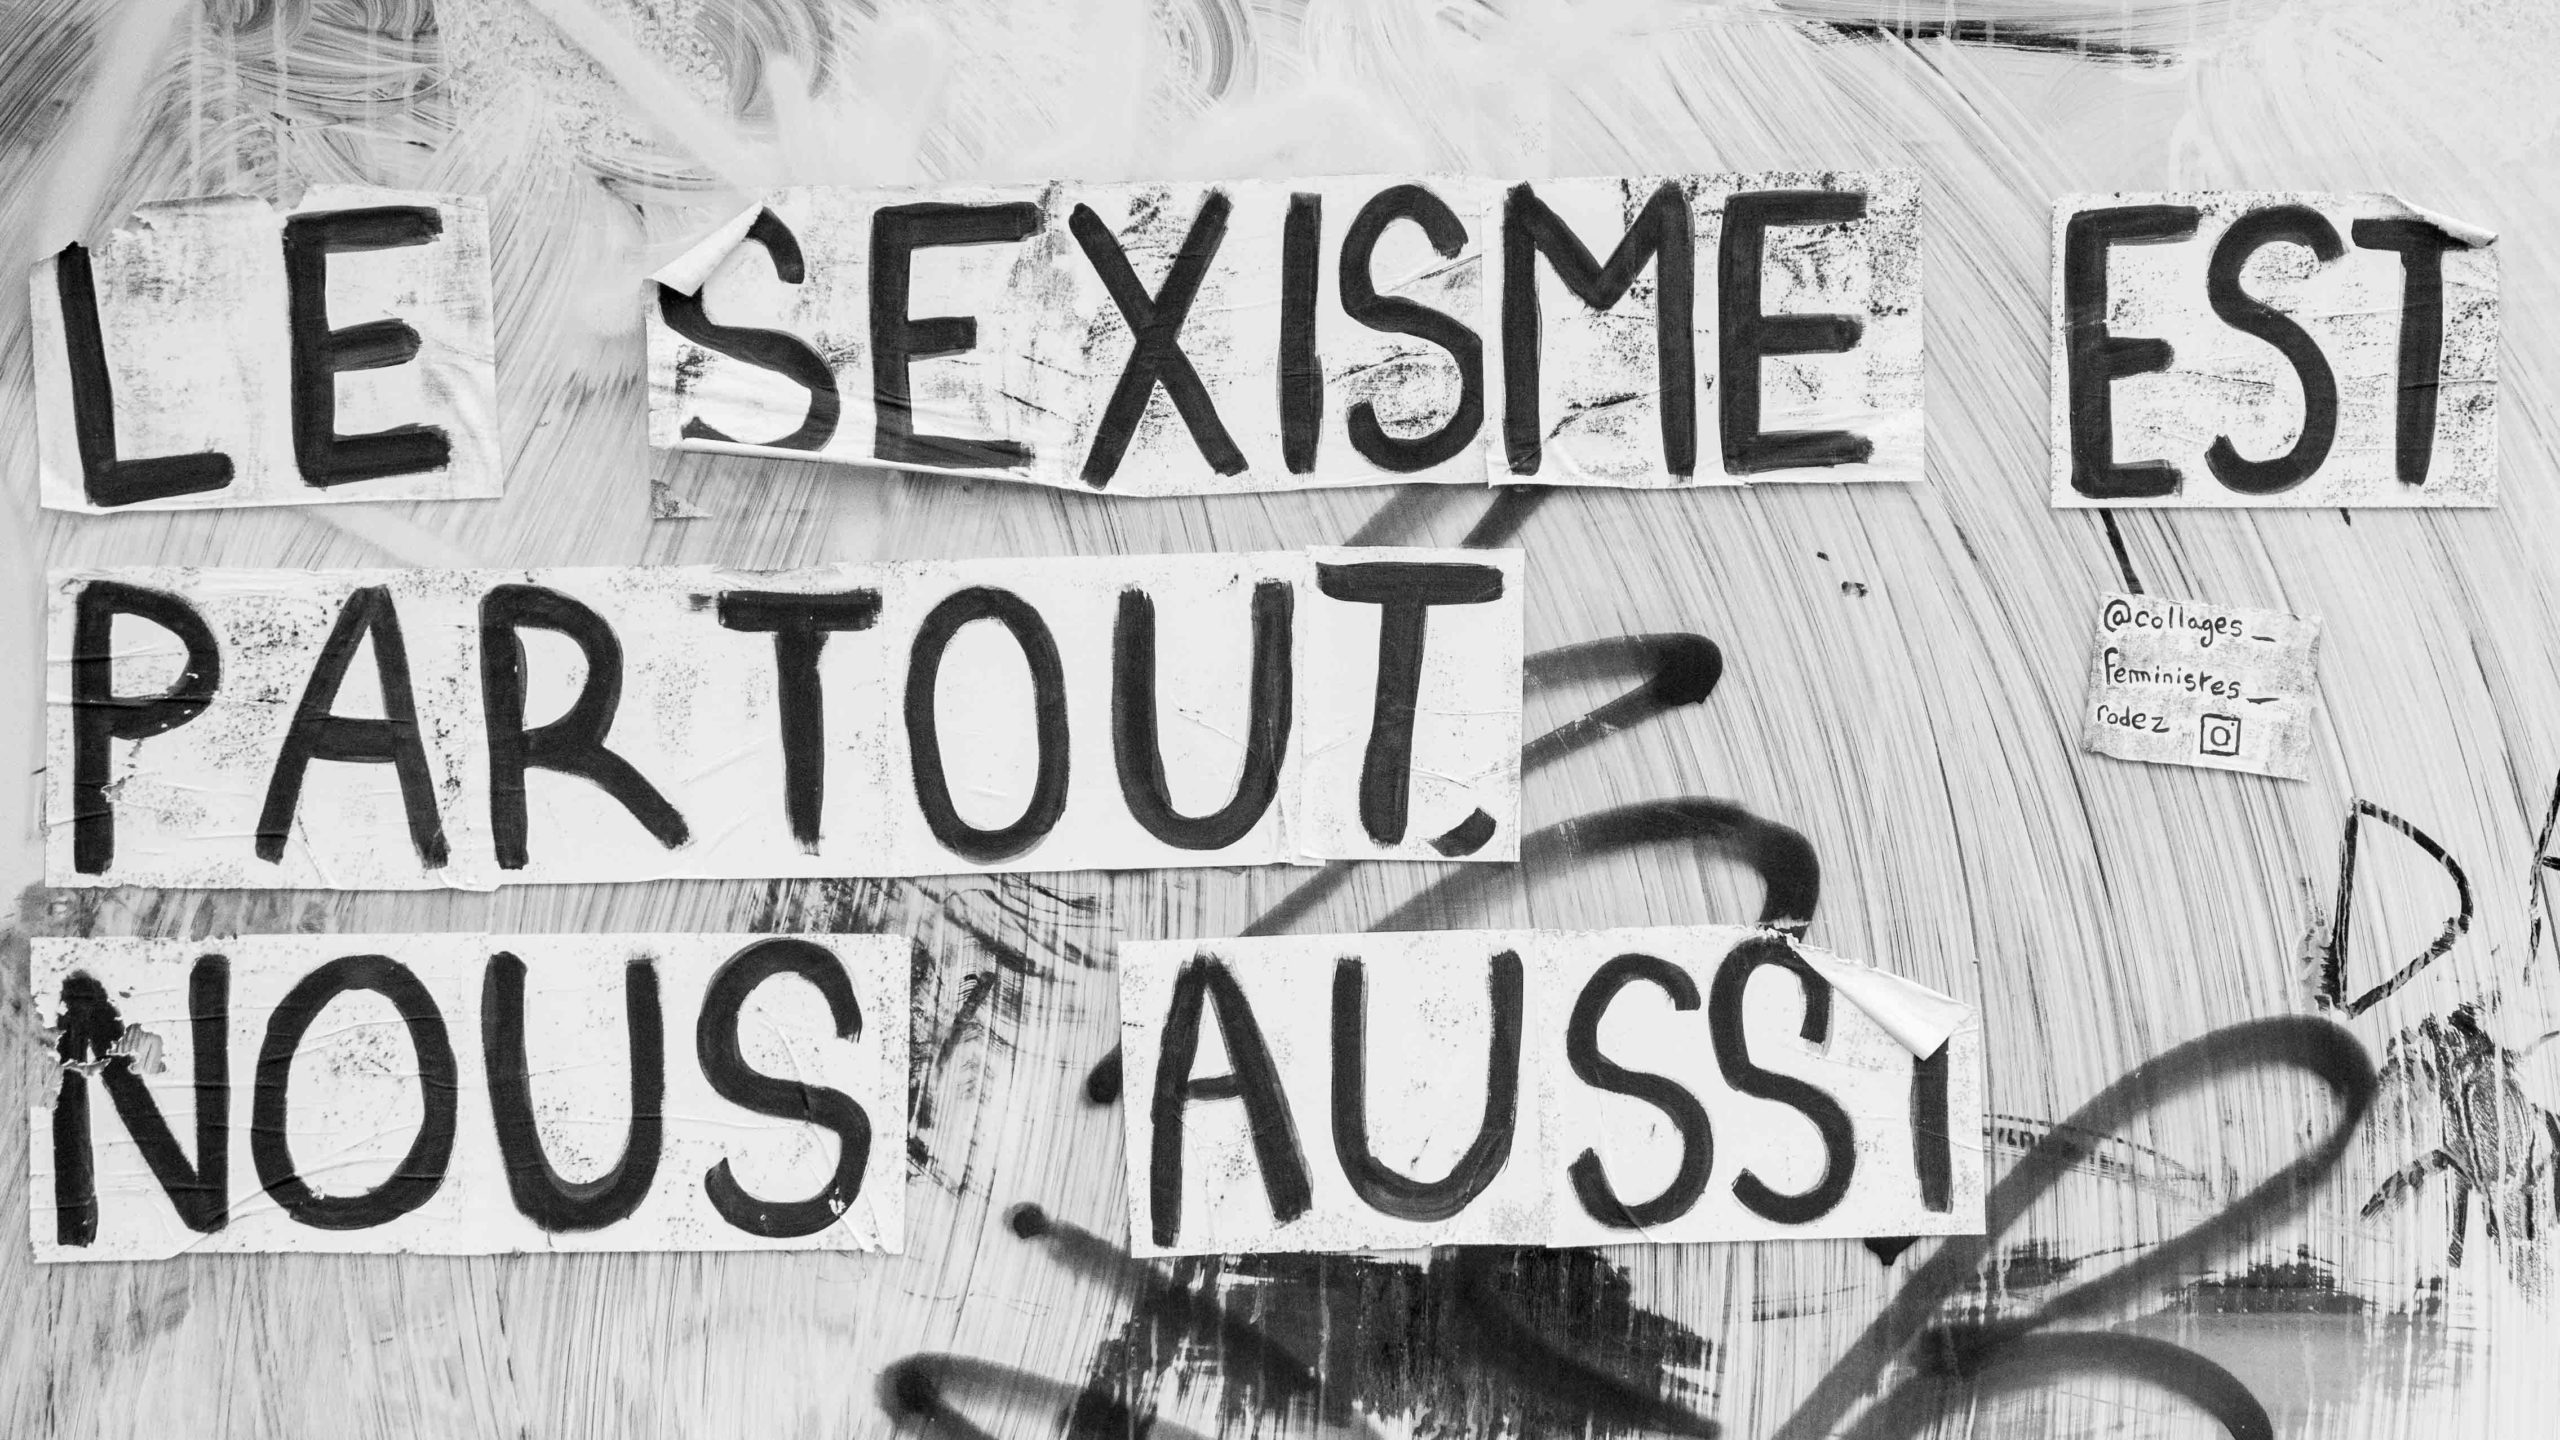 Sexisme street art © Creative Commons CC BY-NC 4.0